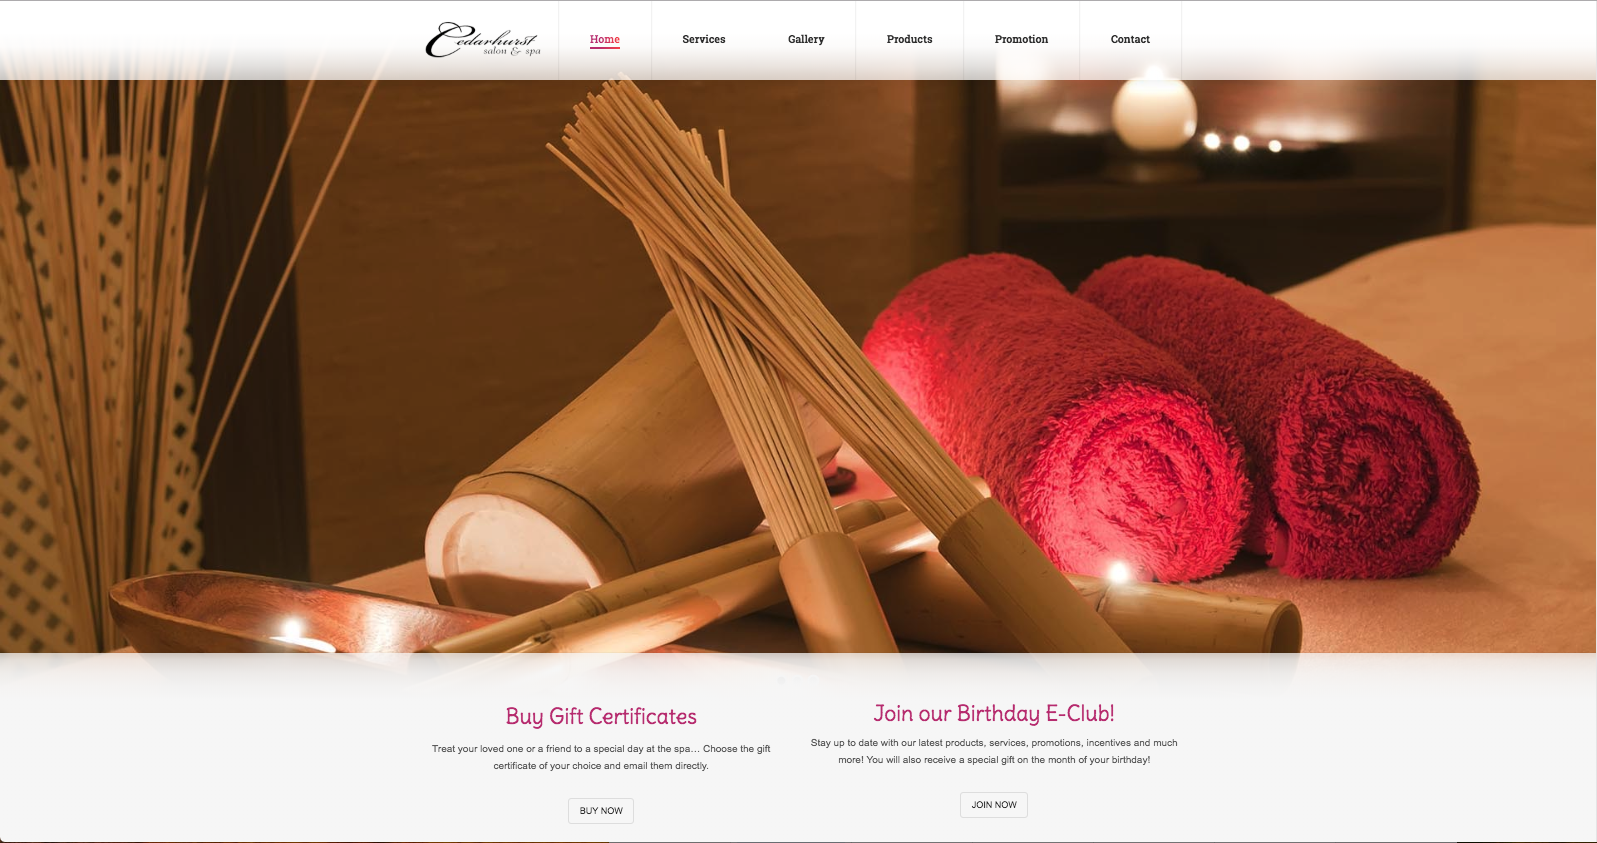 Cedarhurst Salon & Spa  in Ontario, Canada uses separate pages for the content on their website.